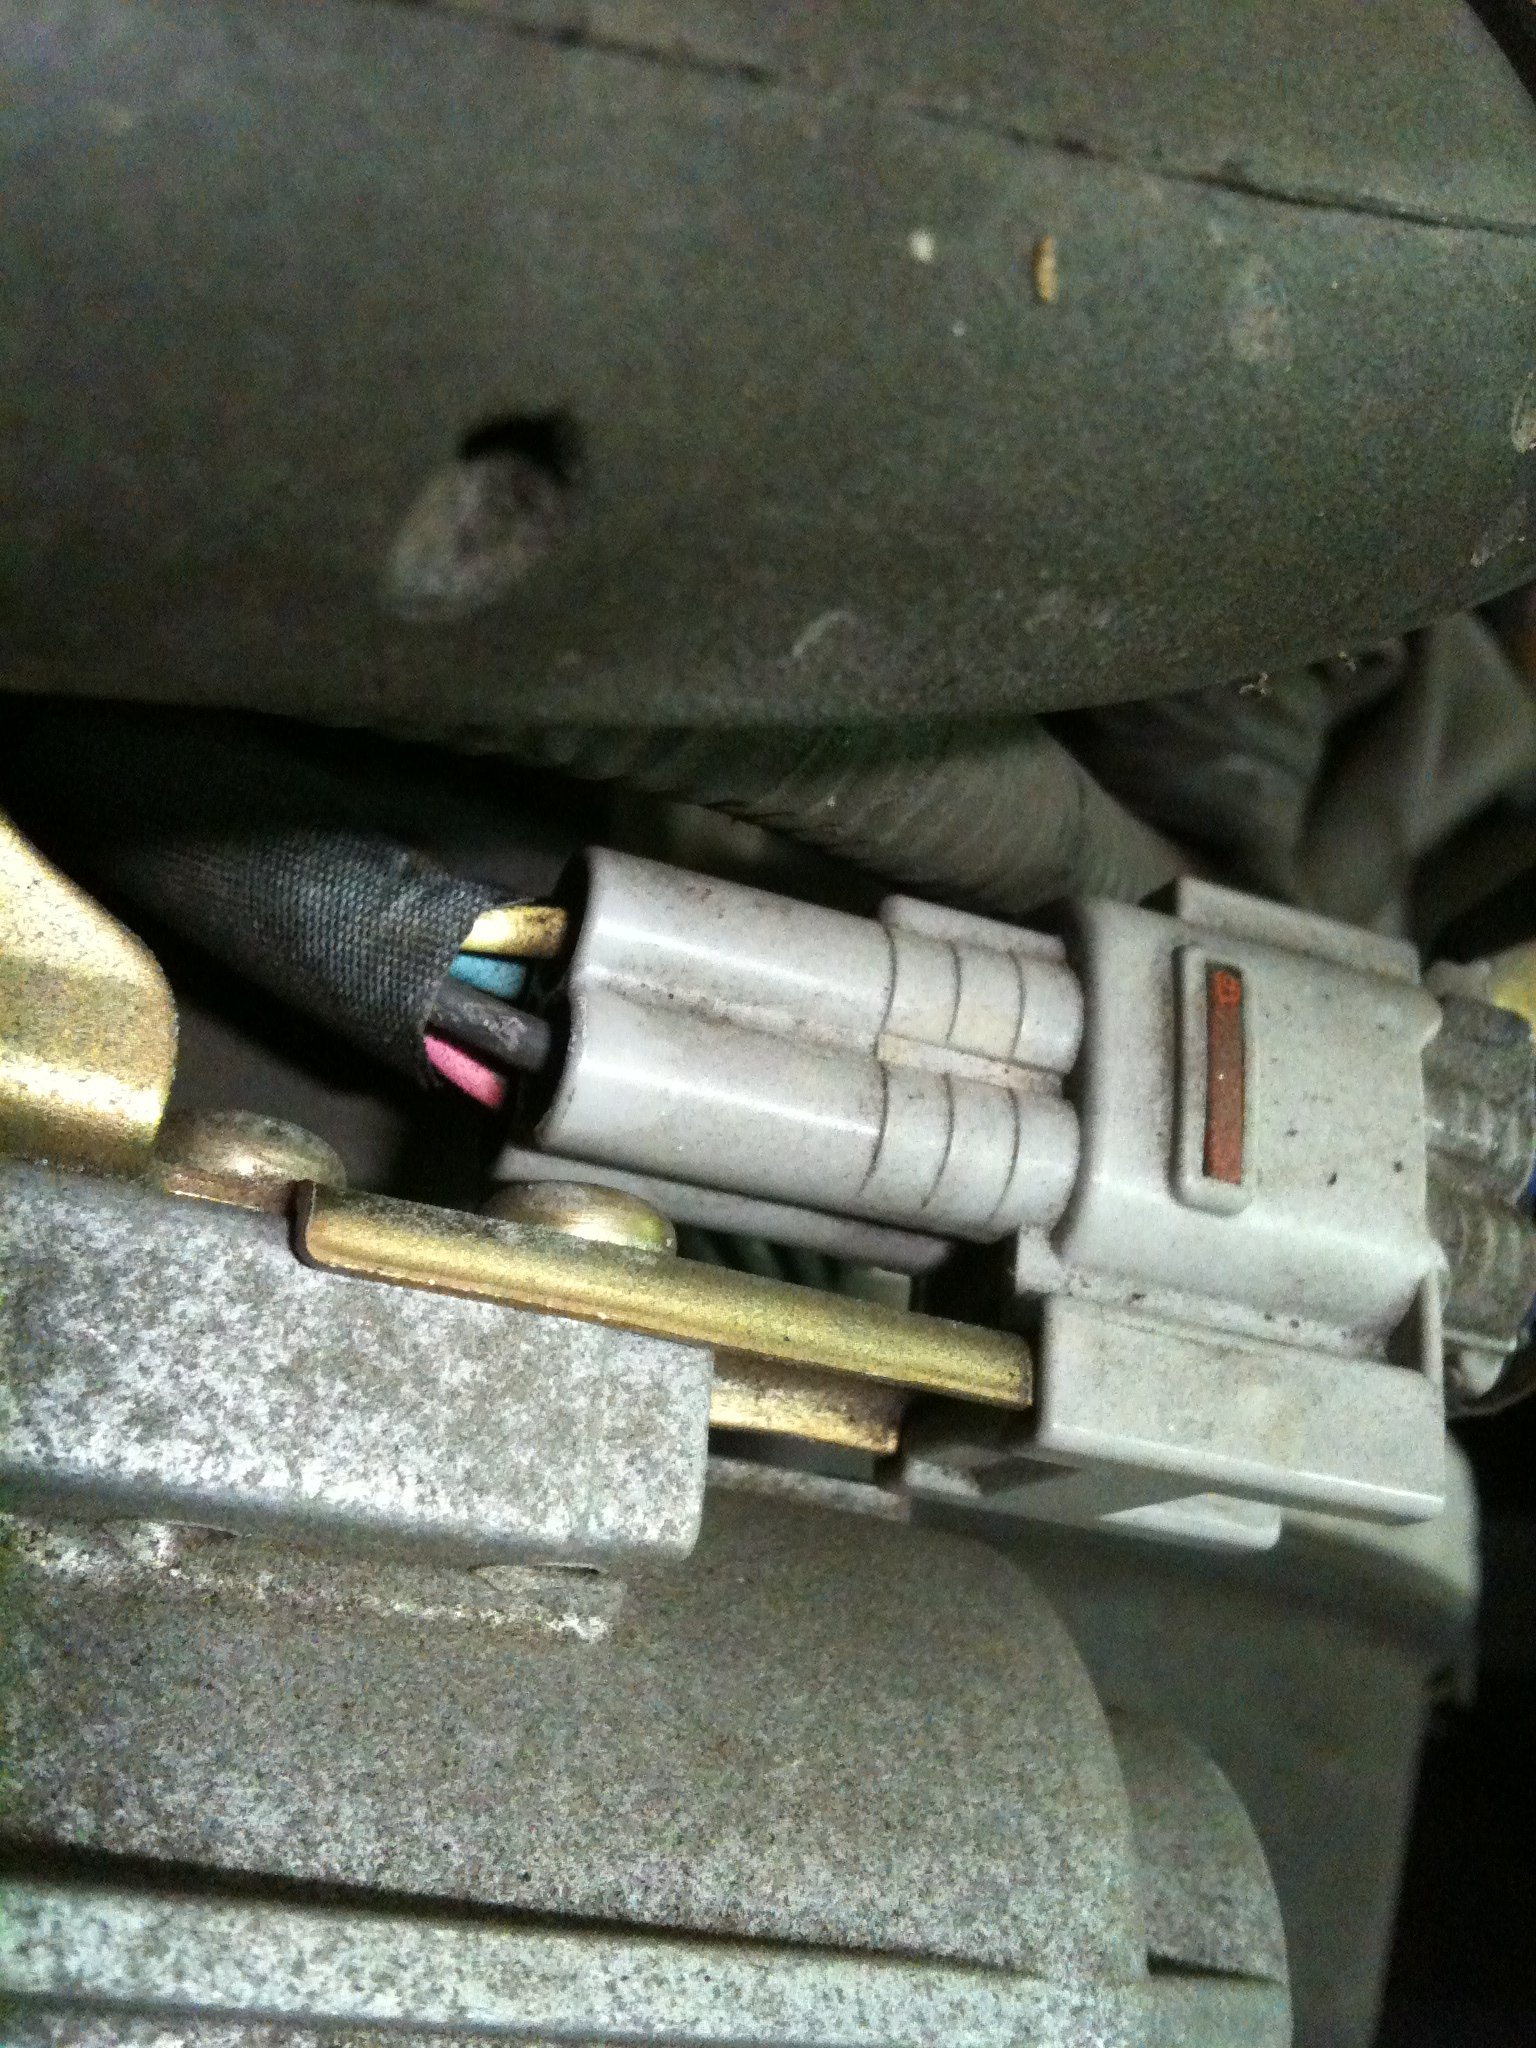 Throttle Position Sensor Wires Cut Need Color Code From Harness To Tps Wiring Diagram 2003 Rav4 Graphic